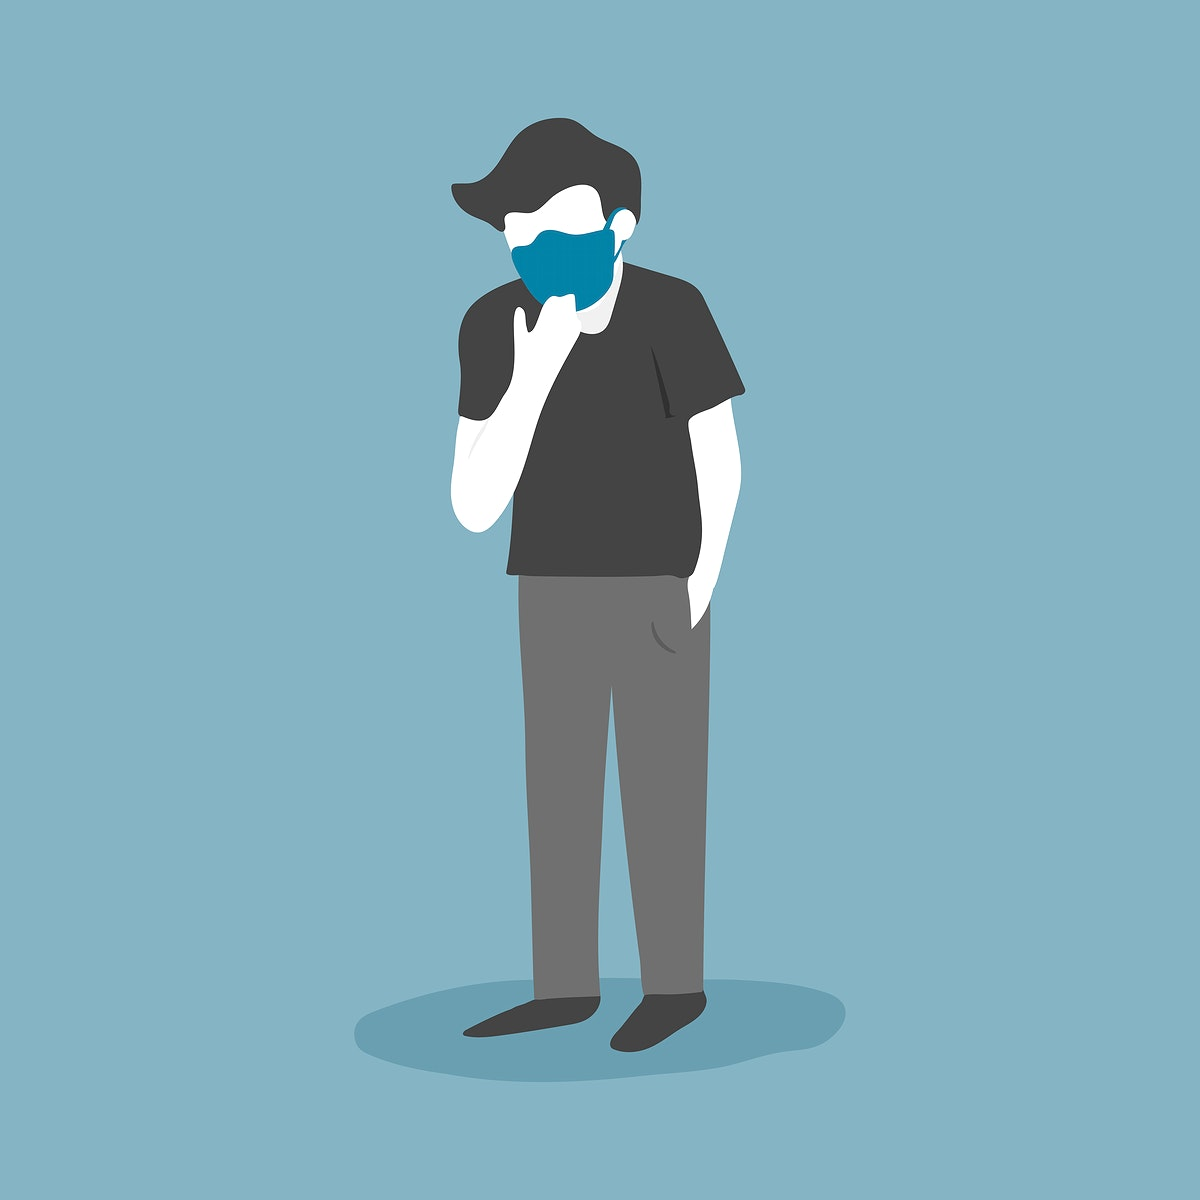 Sick man wearing a protective face mask vector